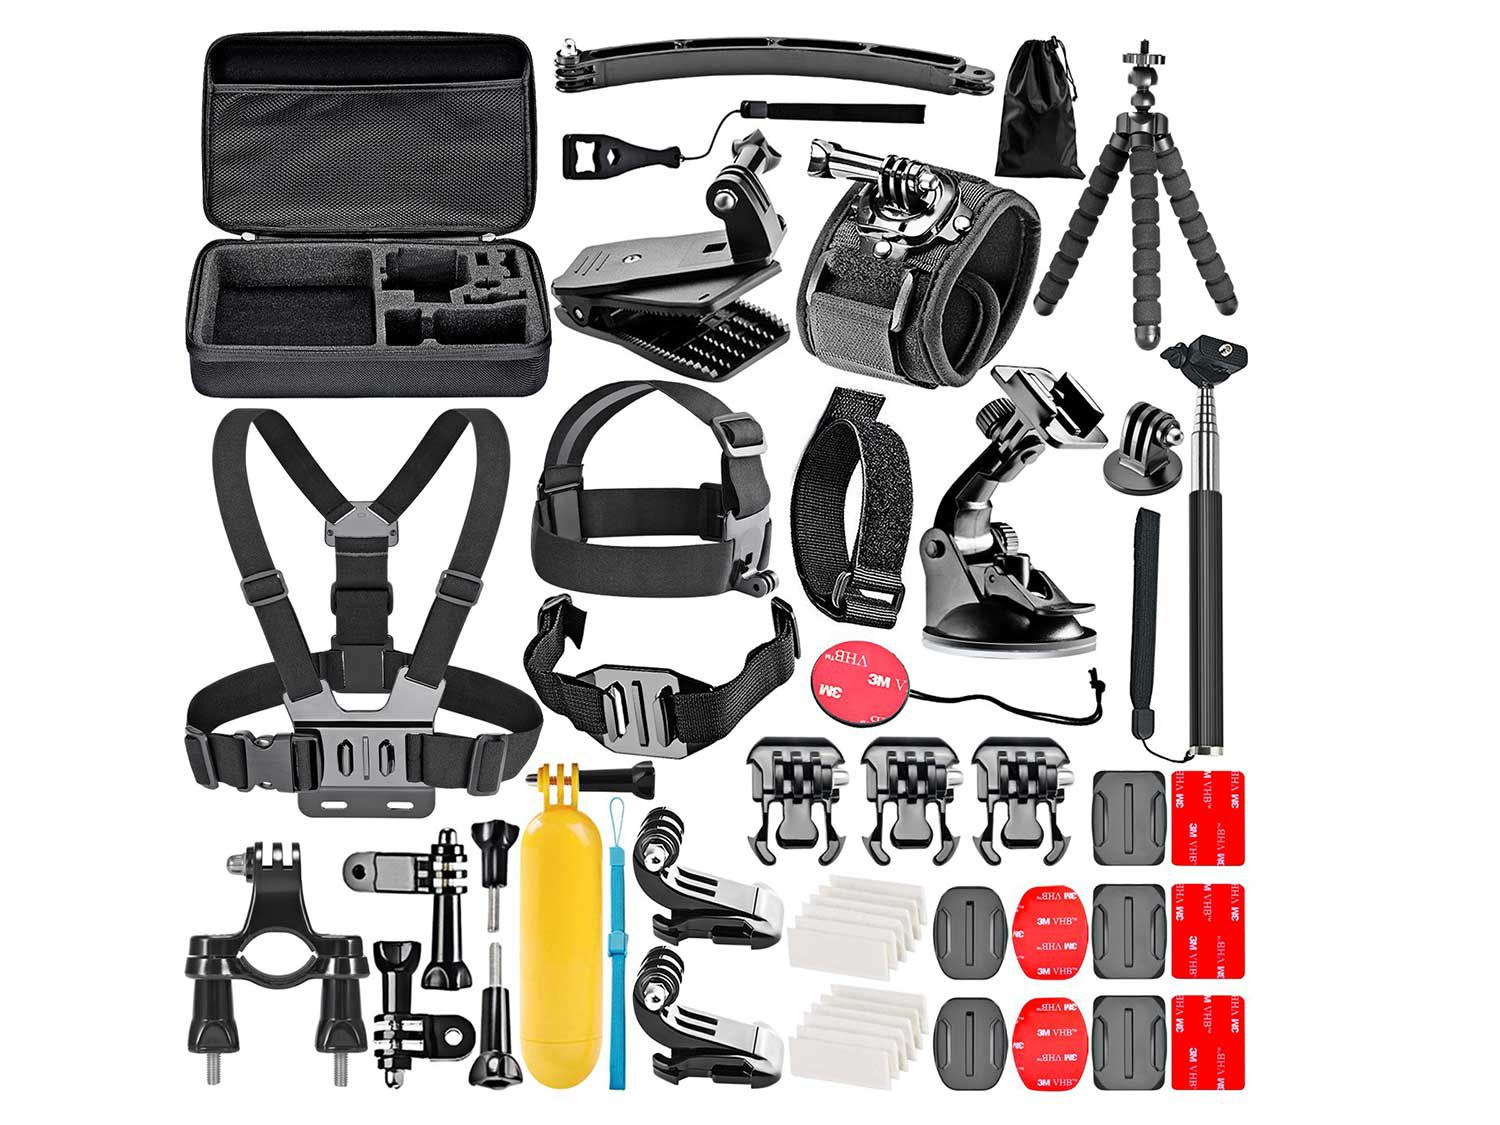 The must-have accessory kit for every GoPro owner.